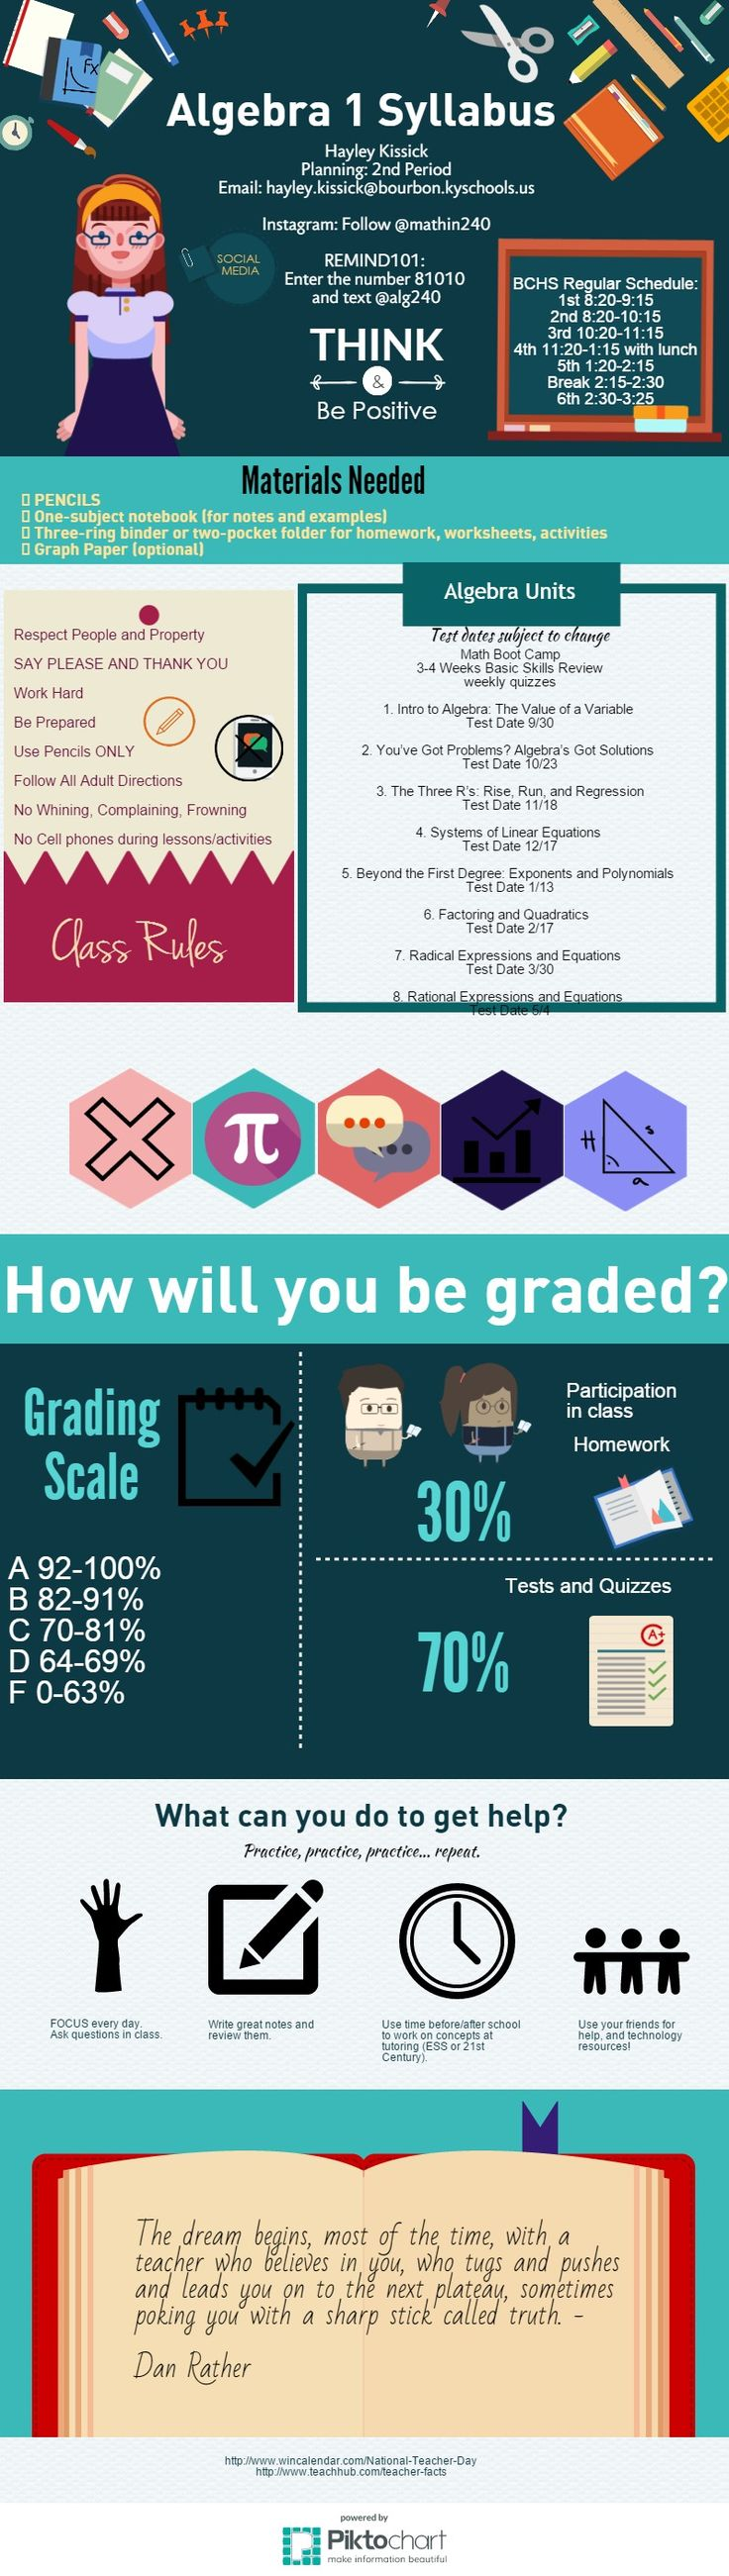 Algebra 1 Syllabus | @Piktochart Infographic